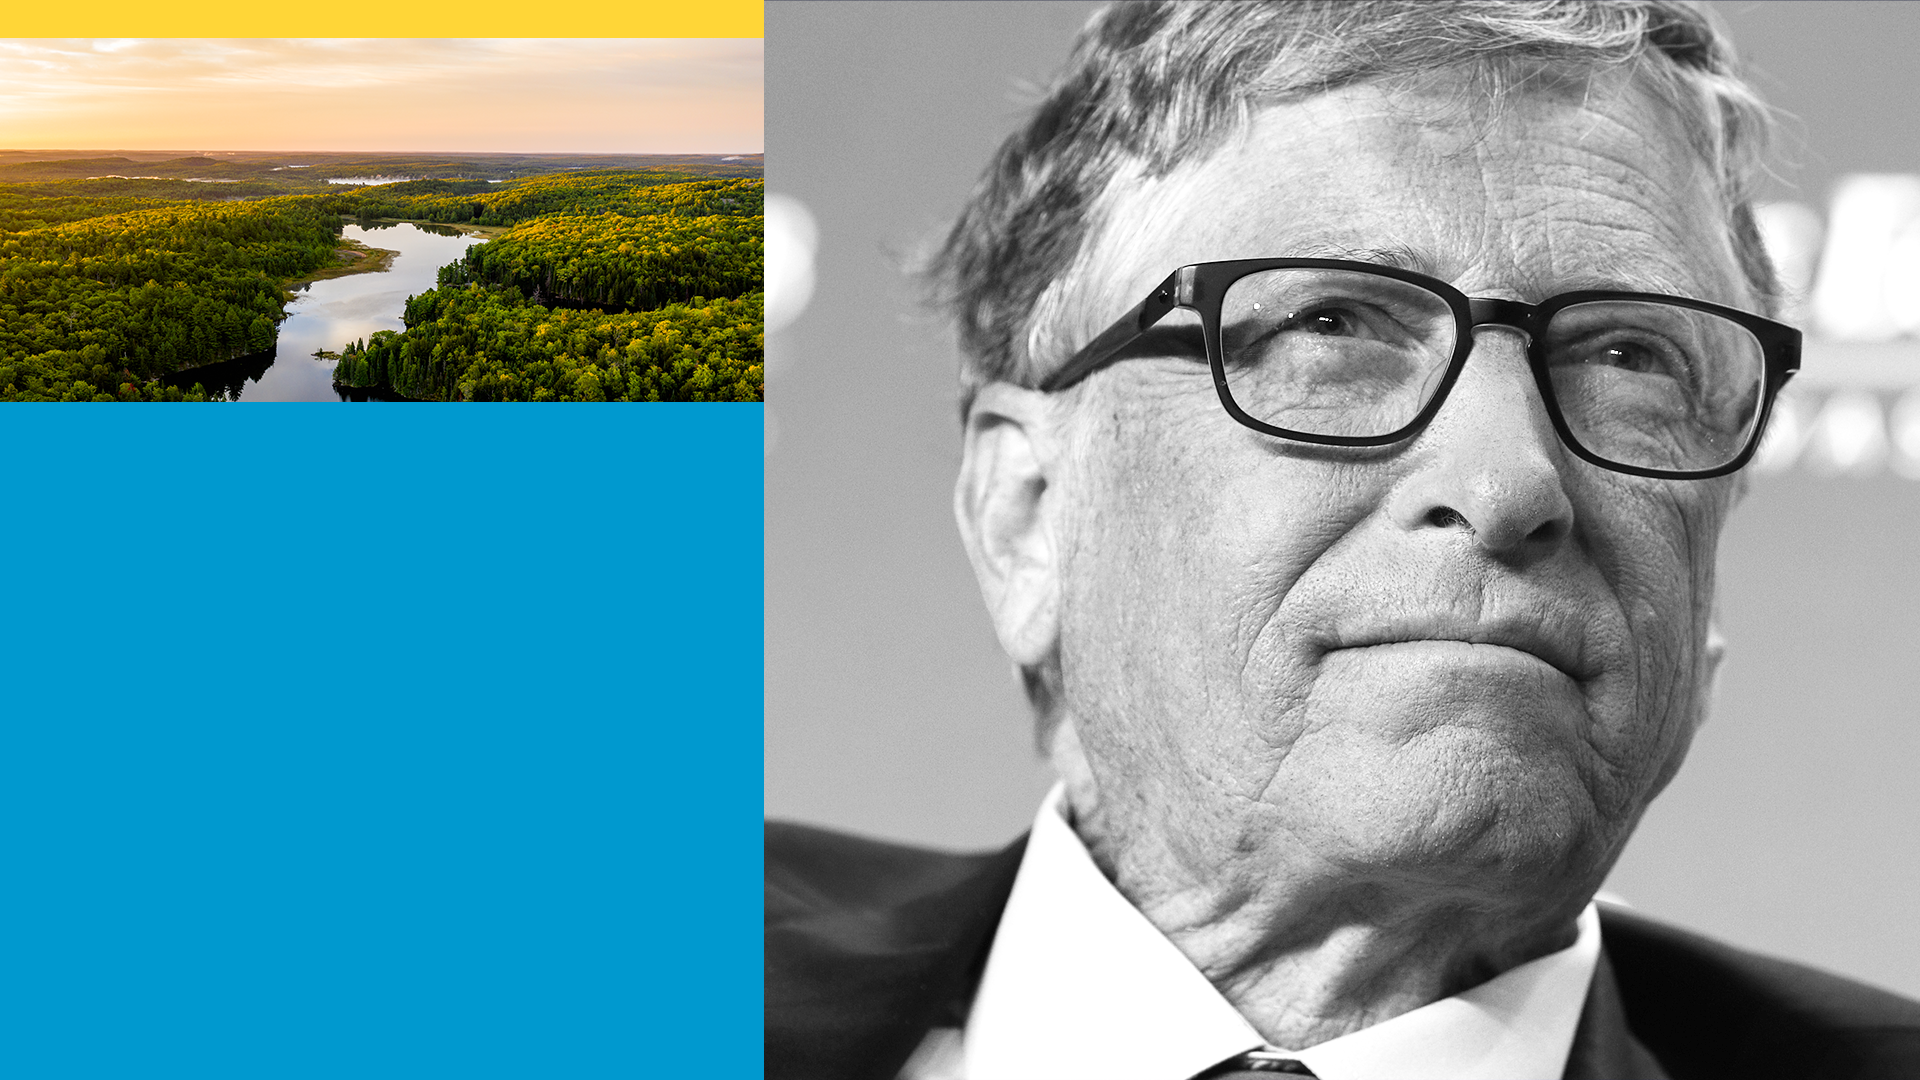 Bill Gates' climate venture fund plans to raise as much as $1.5 billion next year